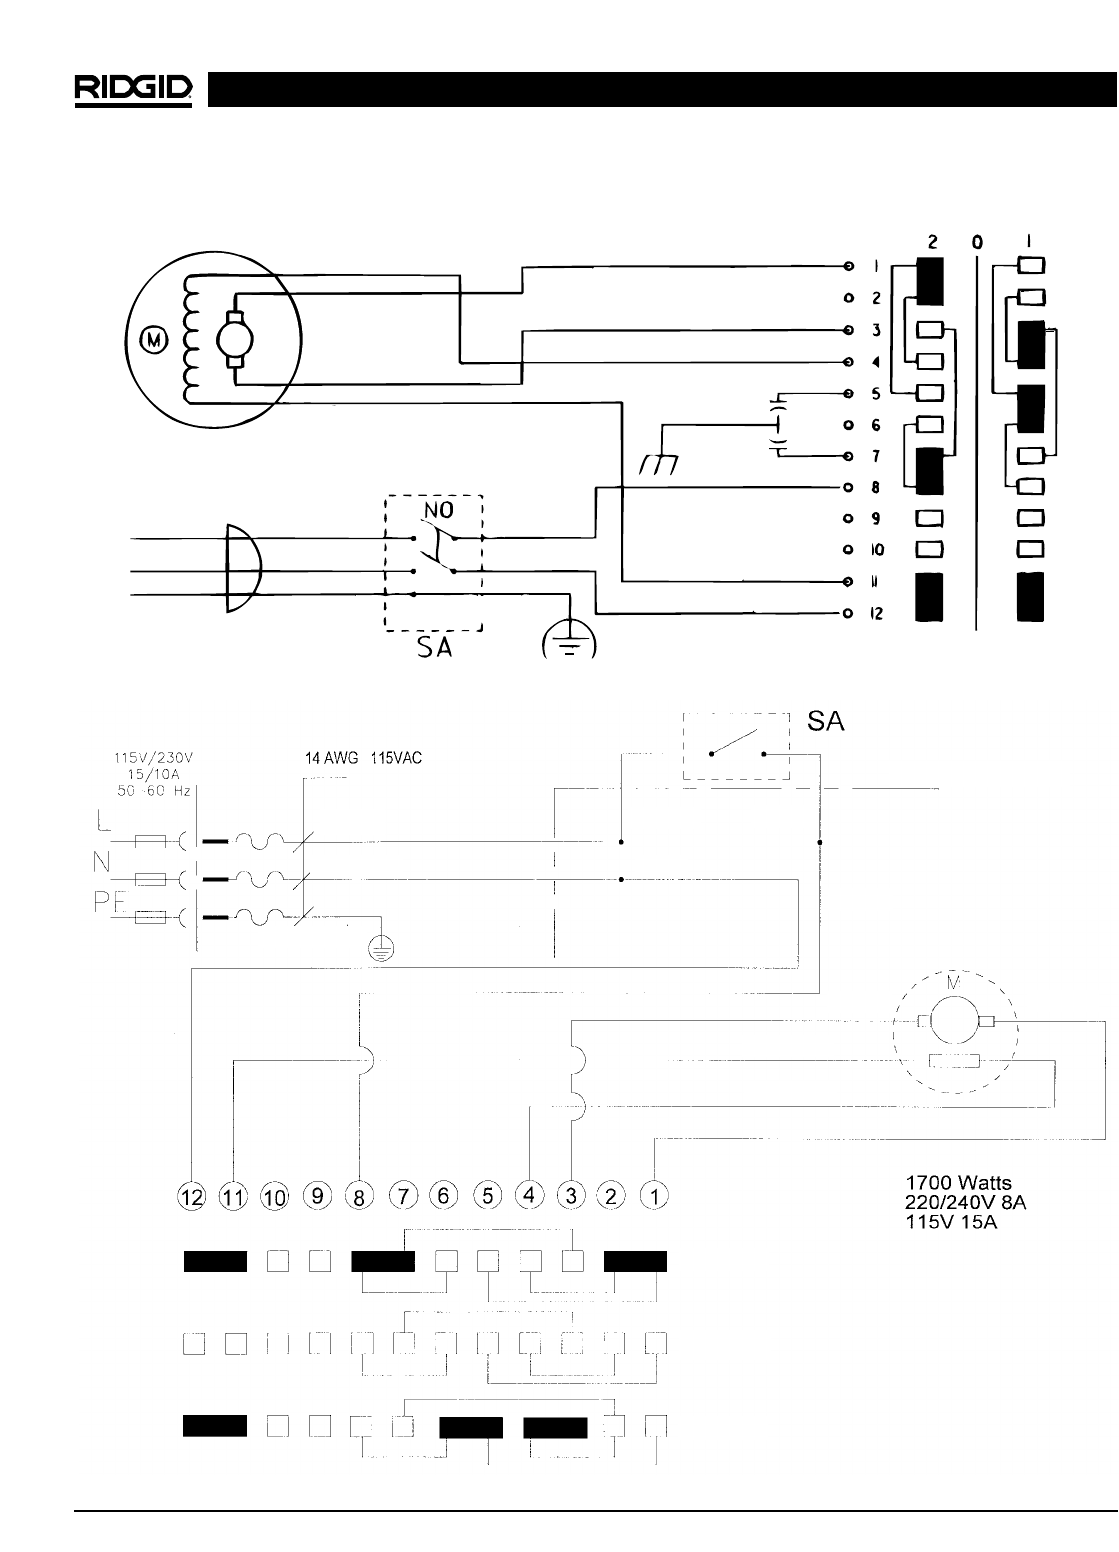 68b109bc 3c1f 445d 9958 08de9edaa37c bg14 page 20 of ridgid sewing machine 300 user guide manualsonline com ridgid 300 wiring diagram at metegol.co